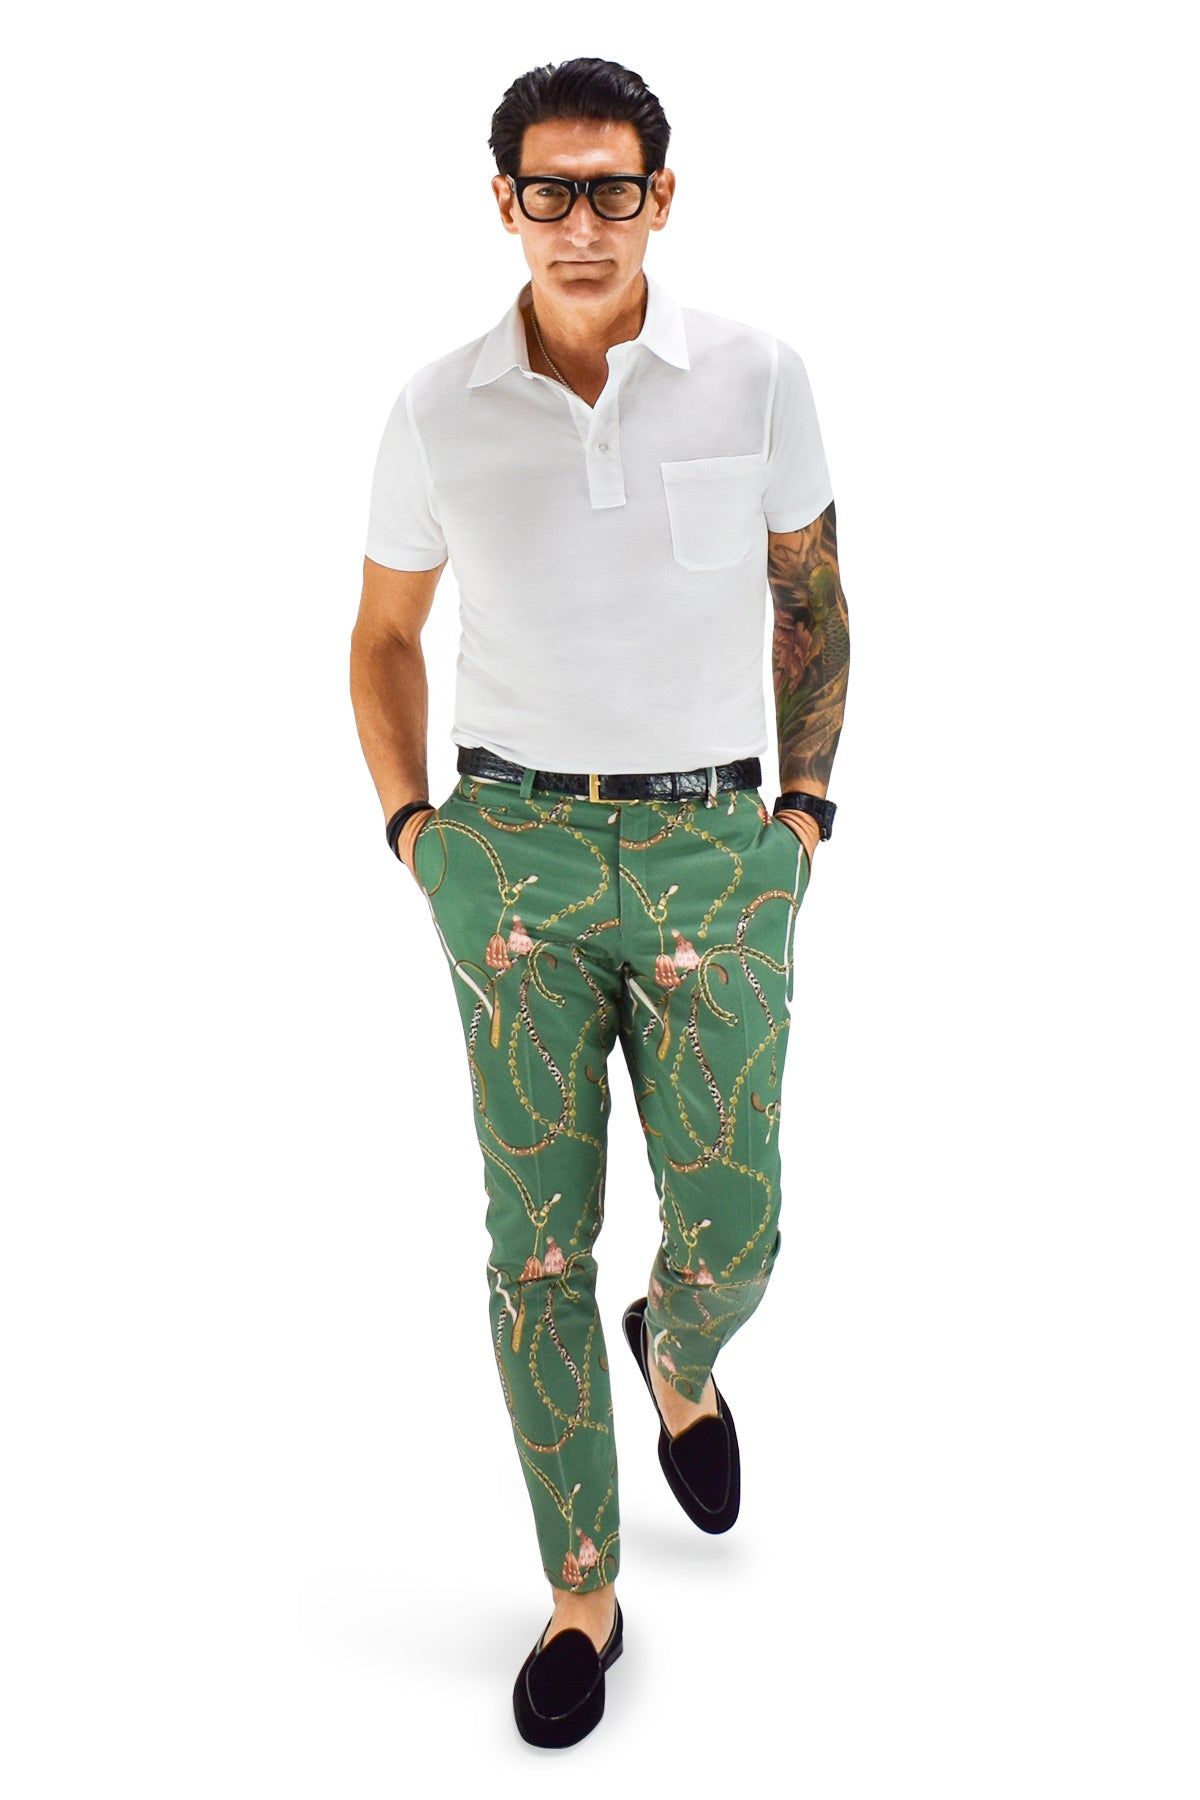 David August Slim Fit Tapered Green with Jewel and Tassel Print Cotton Trousers - Cut-to-Order